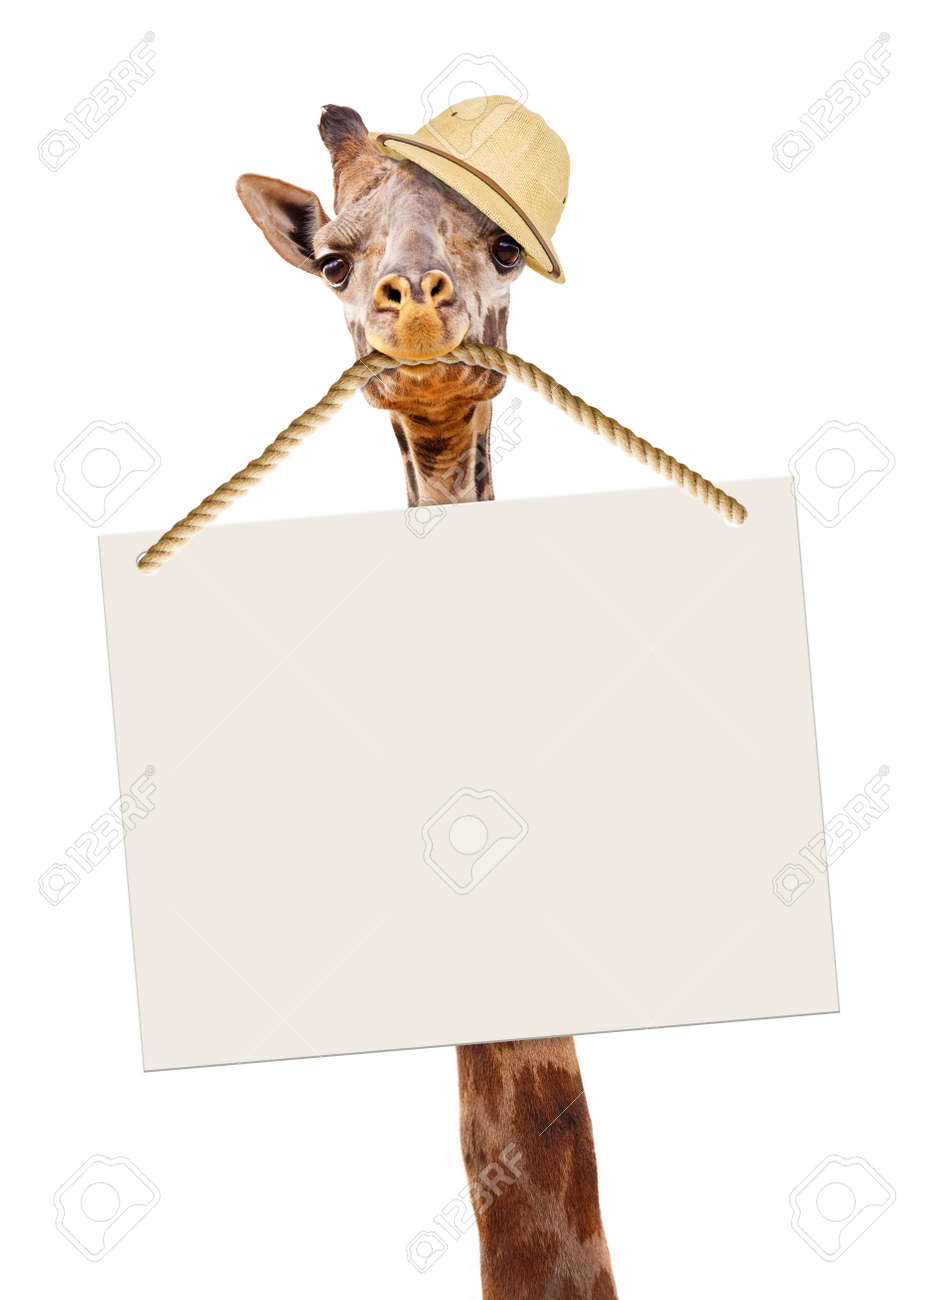 9c469194186 Funny image of giraffe wearing safari guide hat and carrying a blank sign  in his mouth